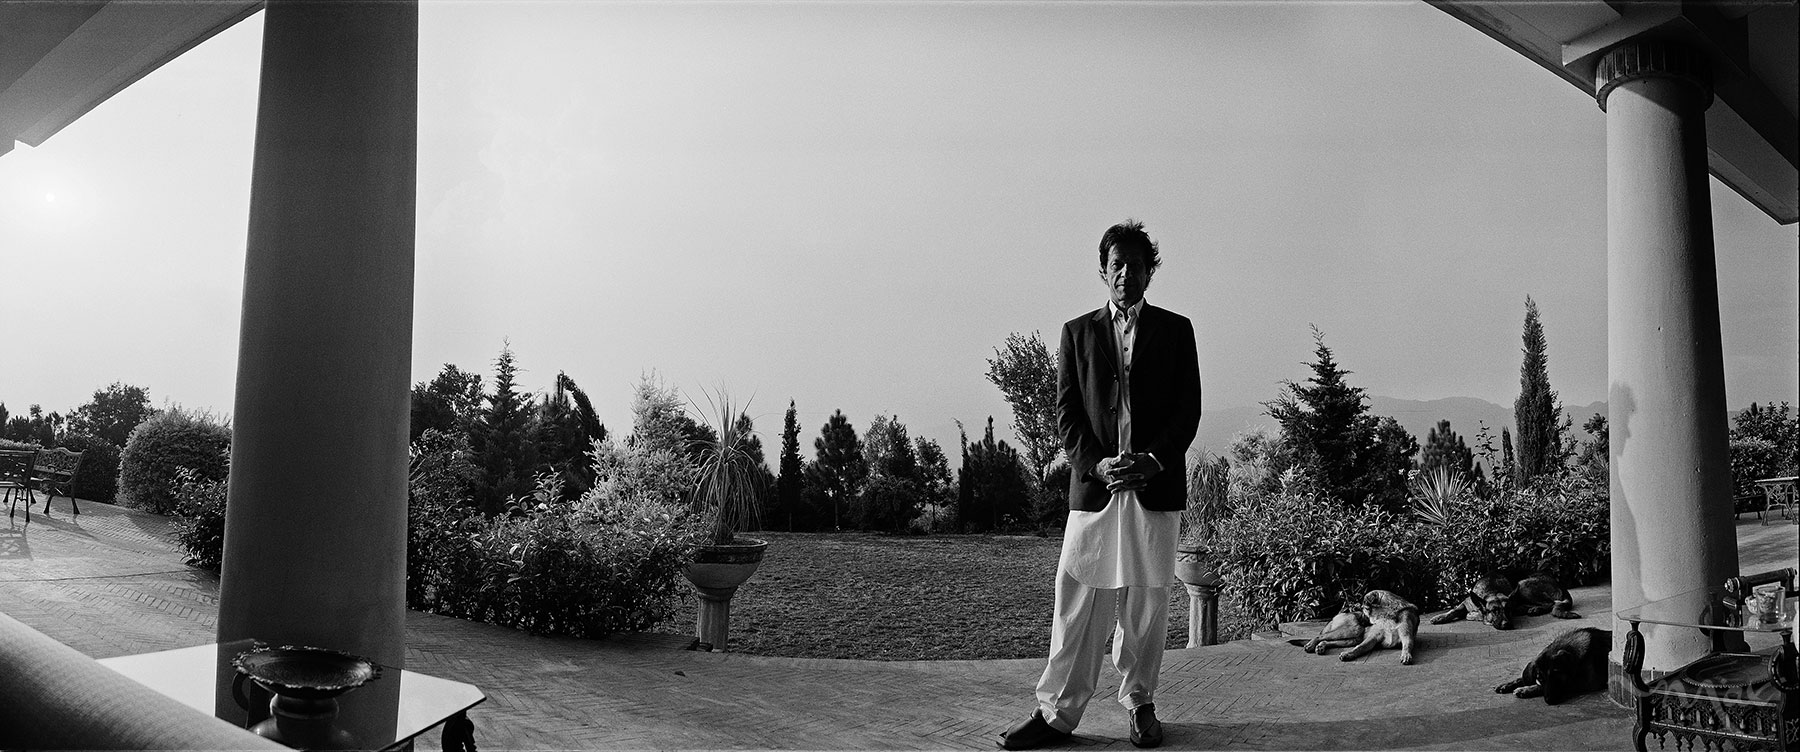 Imran Khan, chairman of Pakistan Tehreek-e-Insaf, poses for a photograph at his home in Islamabad, Pakistan, on Monday, November 05, 2012. Khan, the former Pakistani cricket captain and now the country's rising political star, is gaining support by criticizing the U.S. drone attacks in Pakistan and promoting conservative values.